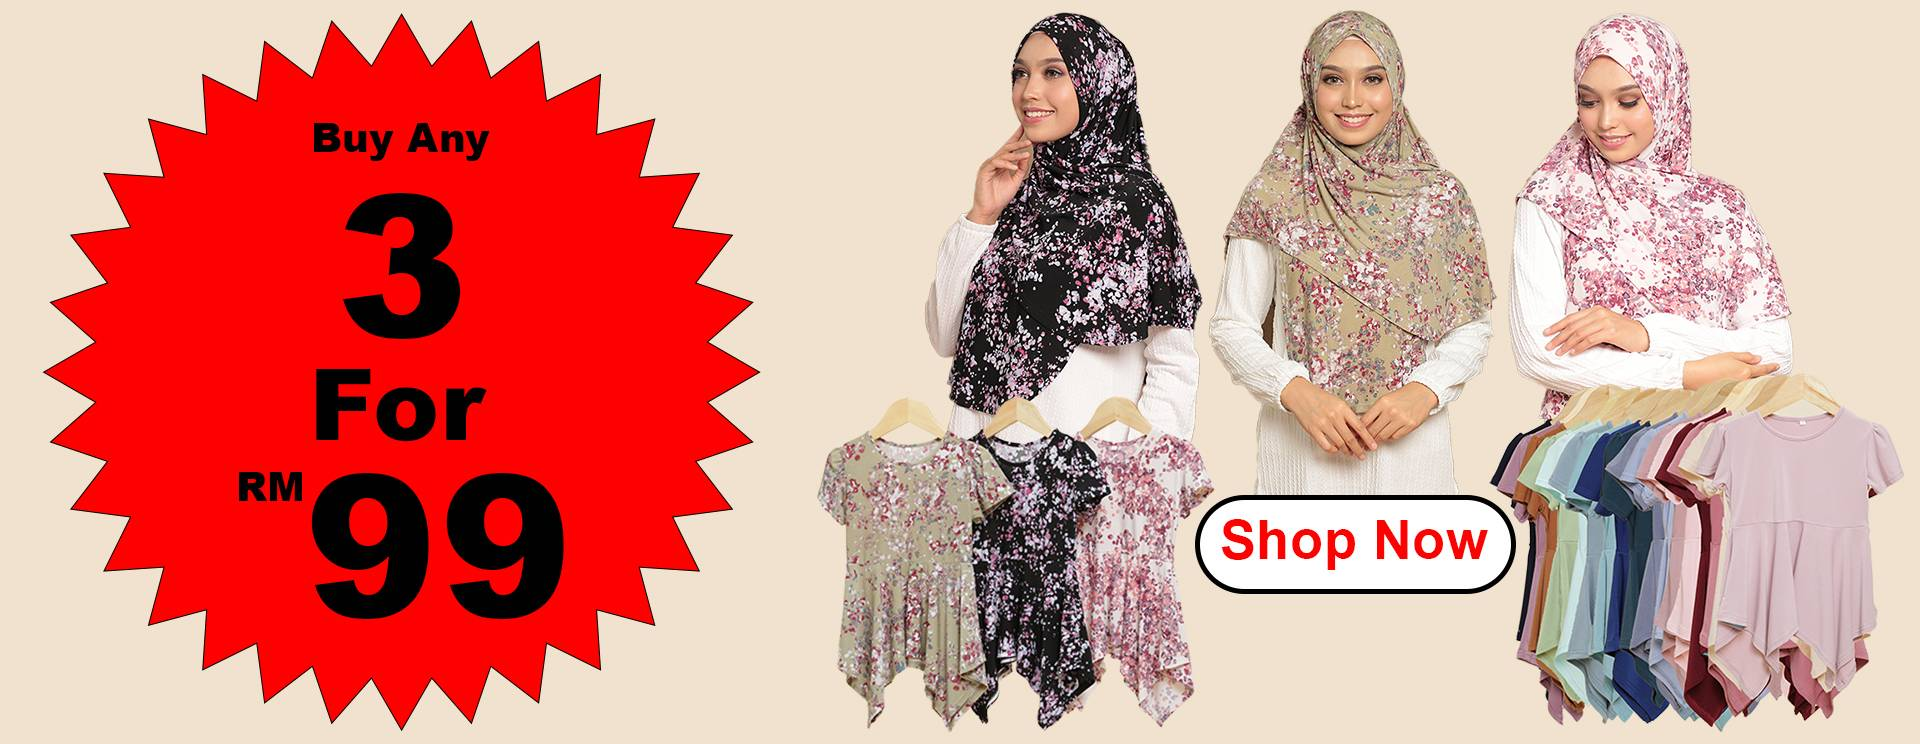 Buy any 3 Items for RM99